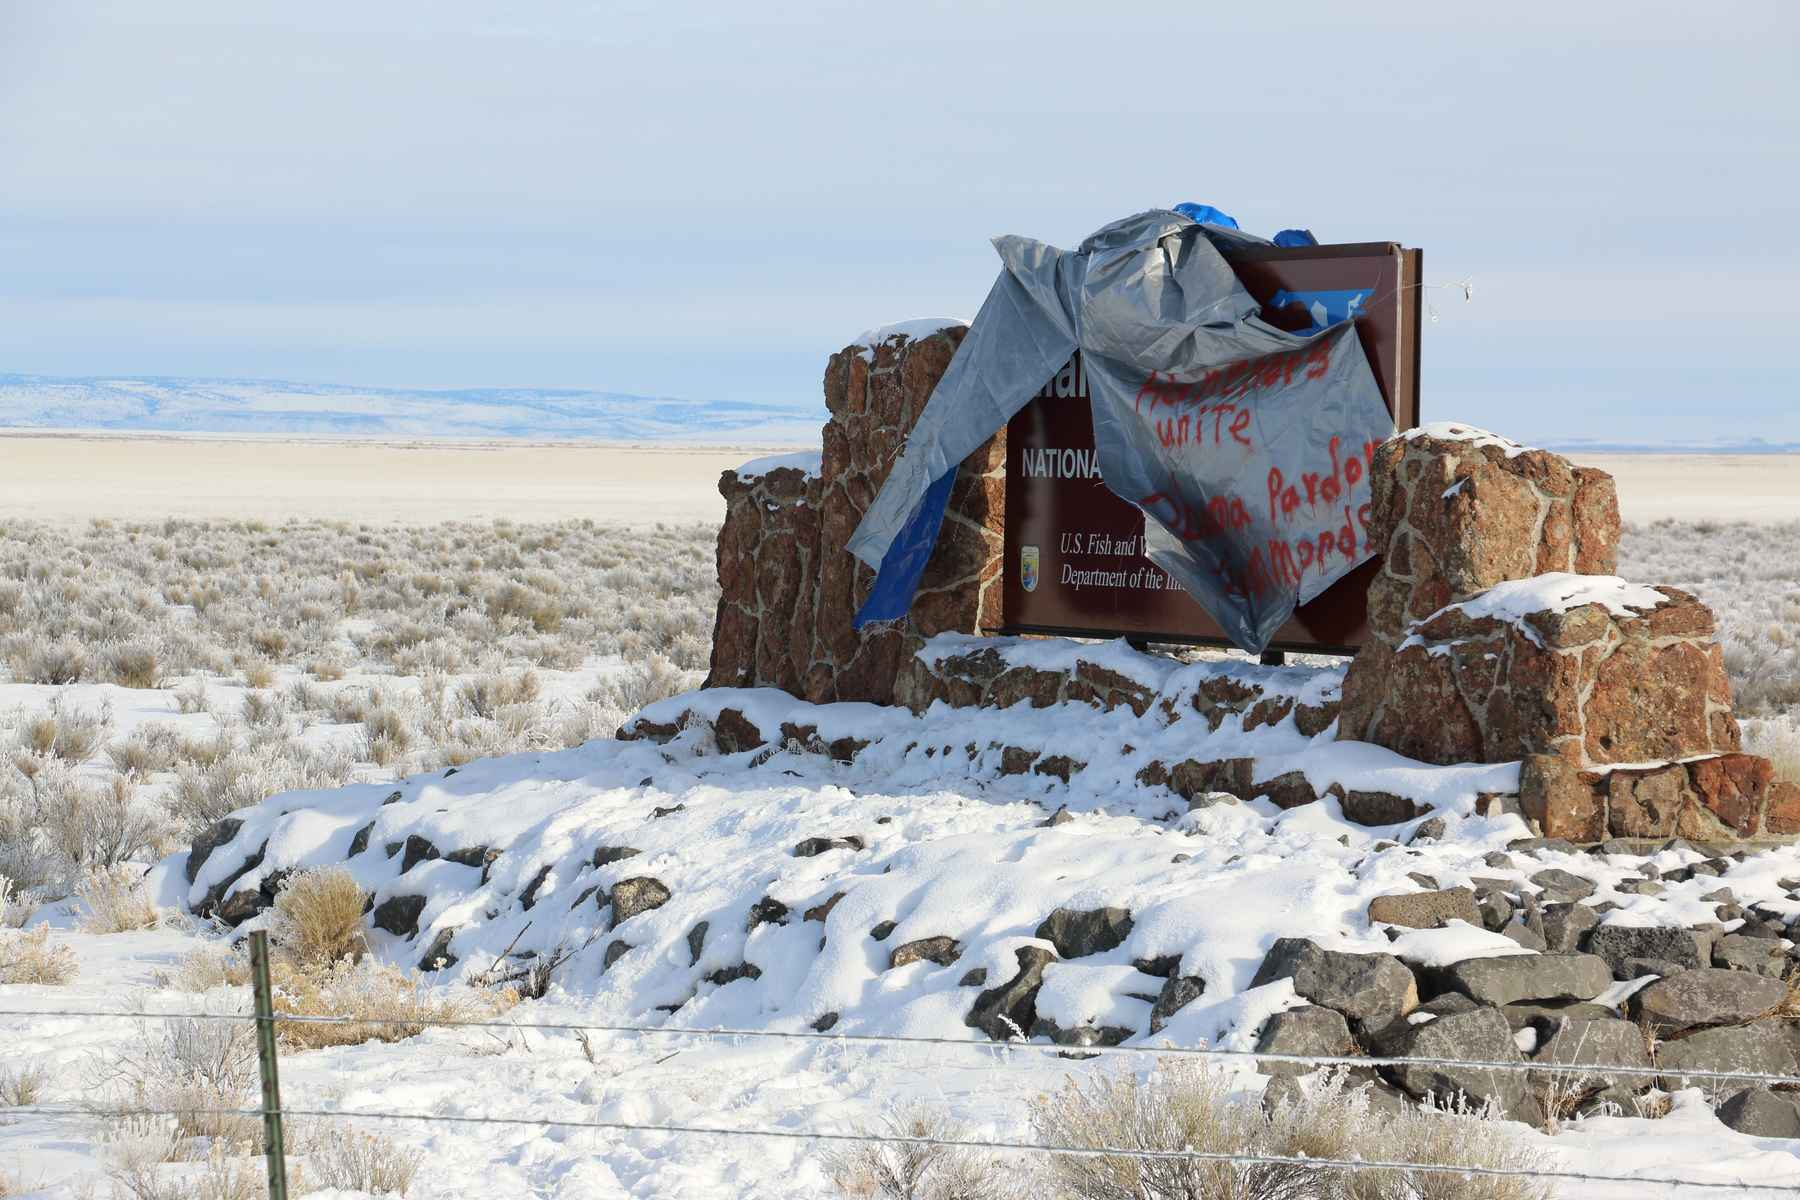 Seeking refuge: from Darling to Malheur | Hatch Magazine